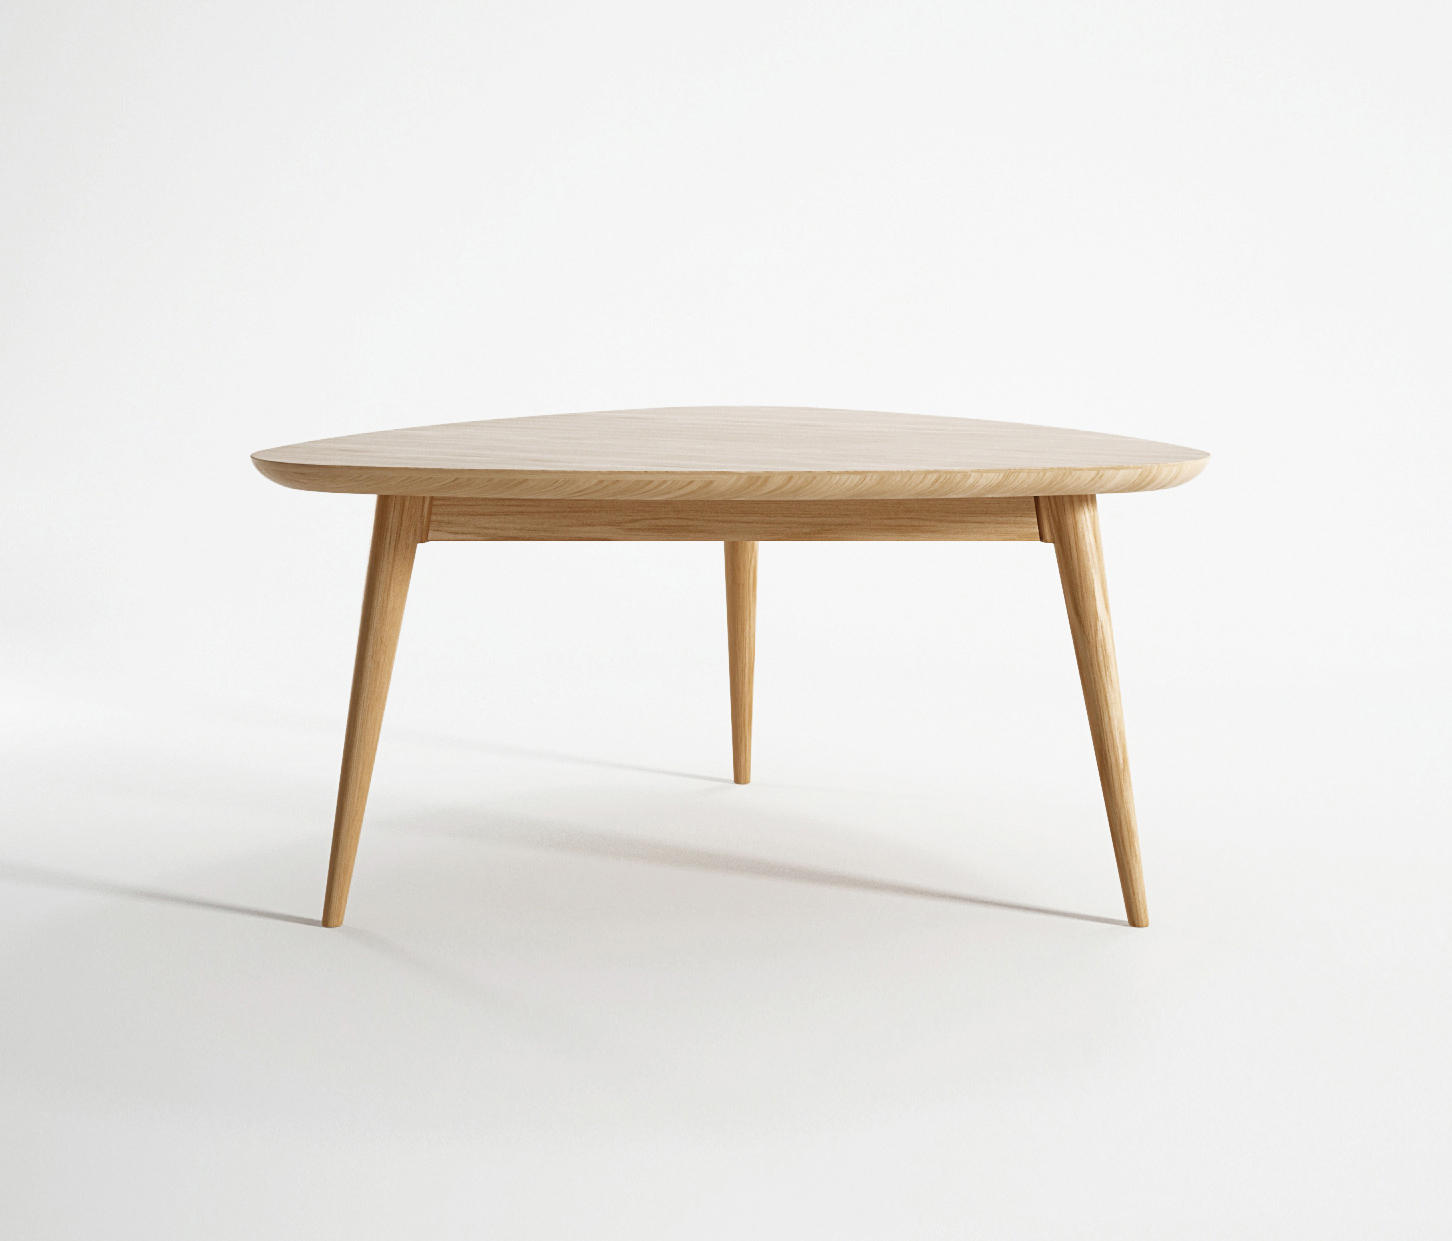 Retro Tripod Coffee Table Walnut: Coffee Tables From Karpenter